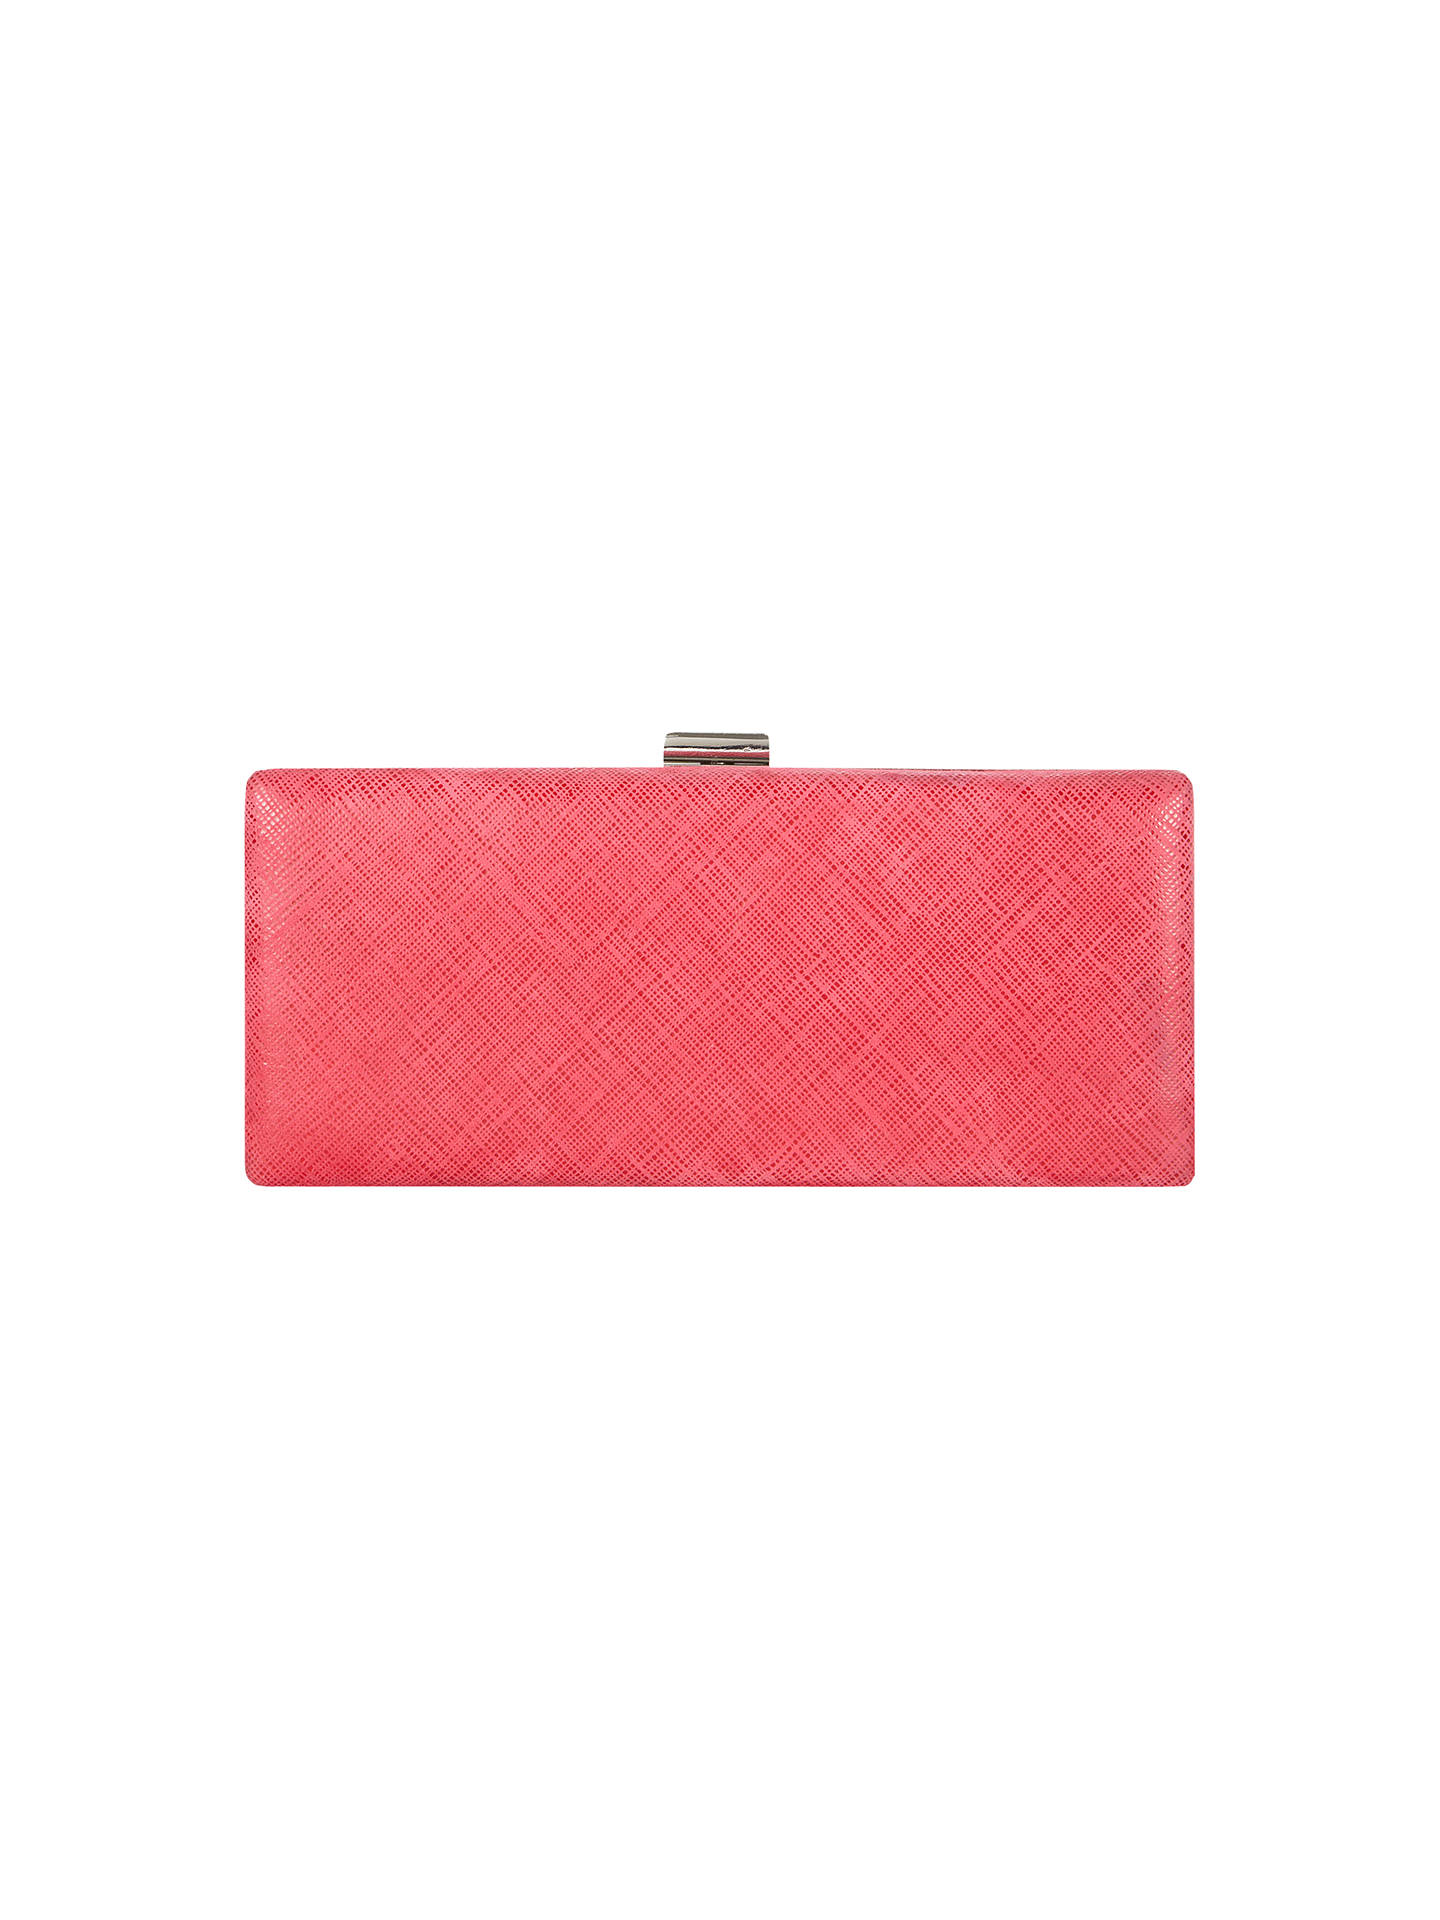 Phase Eight Elle Clutch Bag Magenta Online At Johnlewis